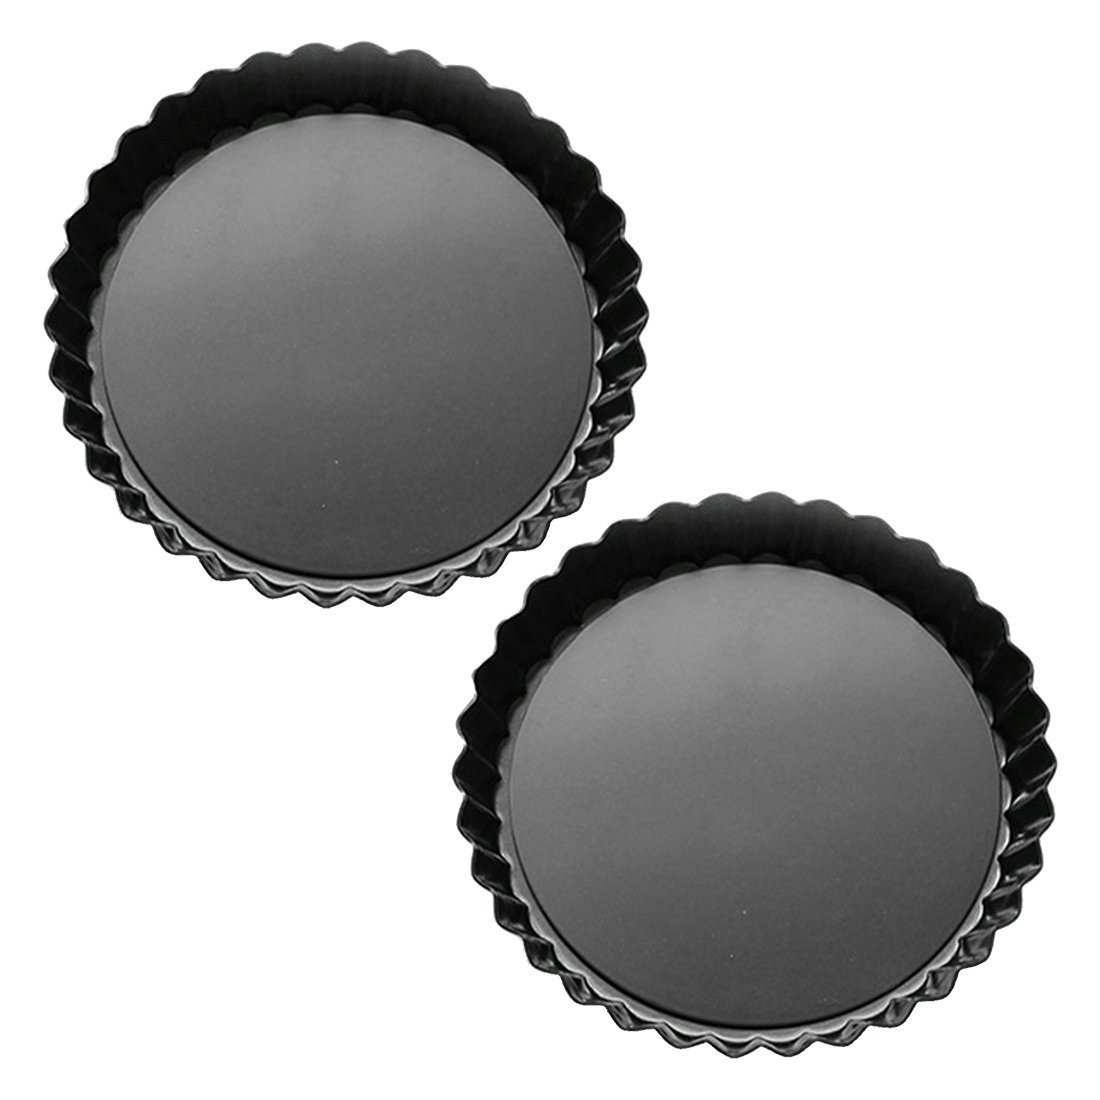 Tosnail 2 Pack Non-Stick Quiche Pan Tart Pan with Removable Loose Bottom - 9 Inch